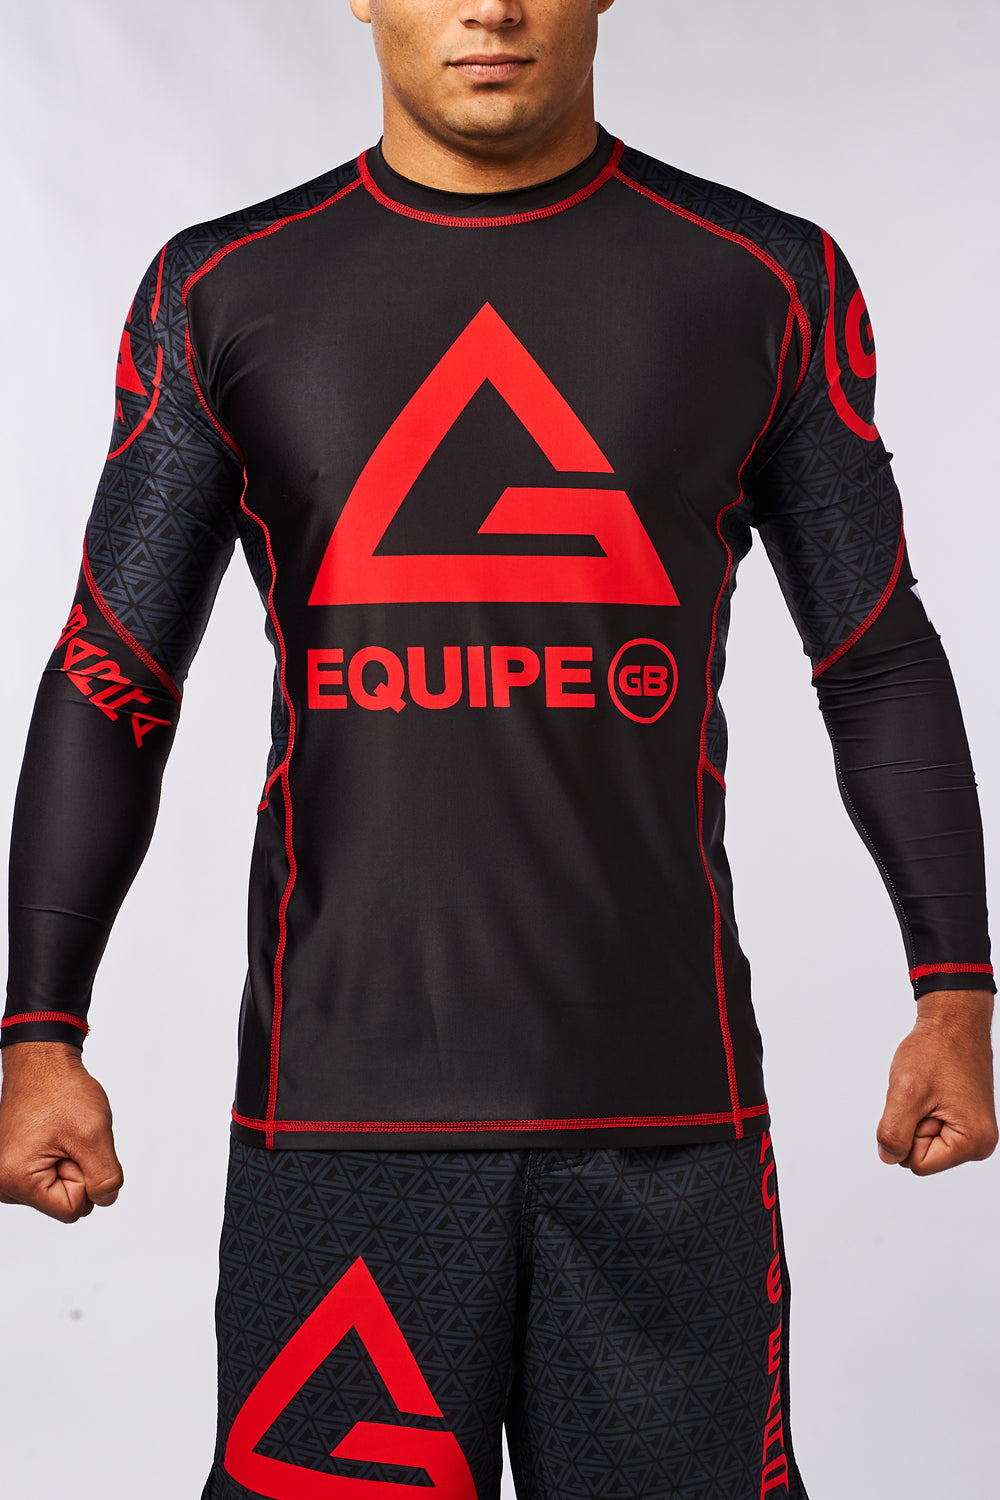 Equip Compressed Fit L/S Rashguard - Black